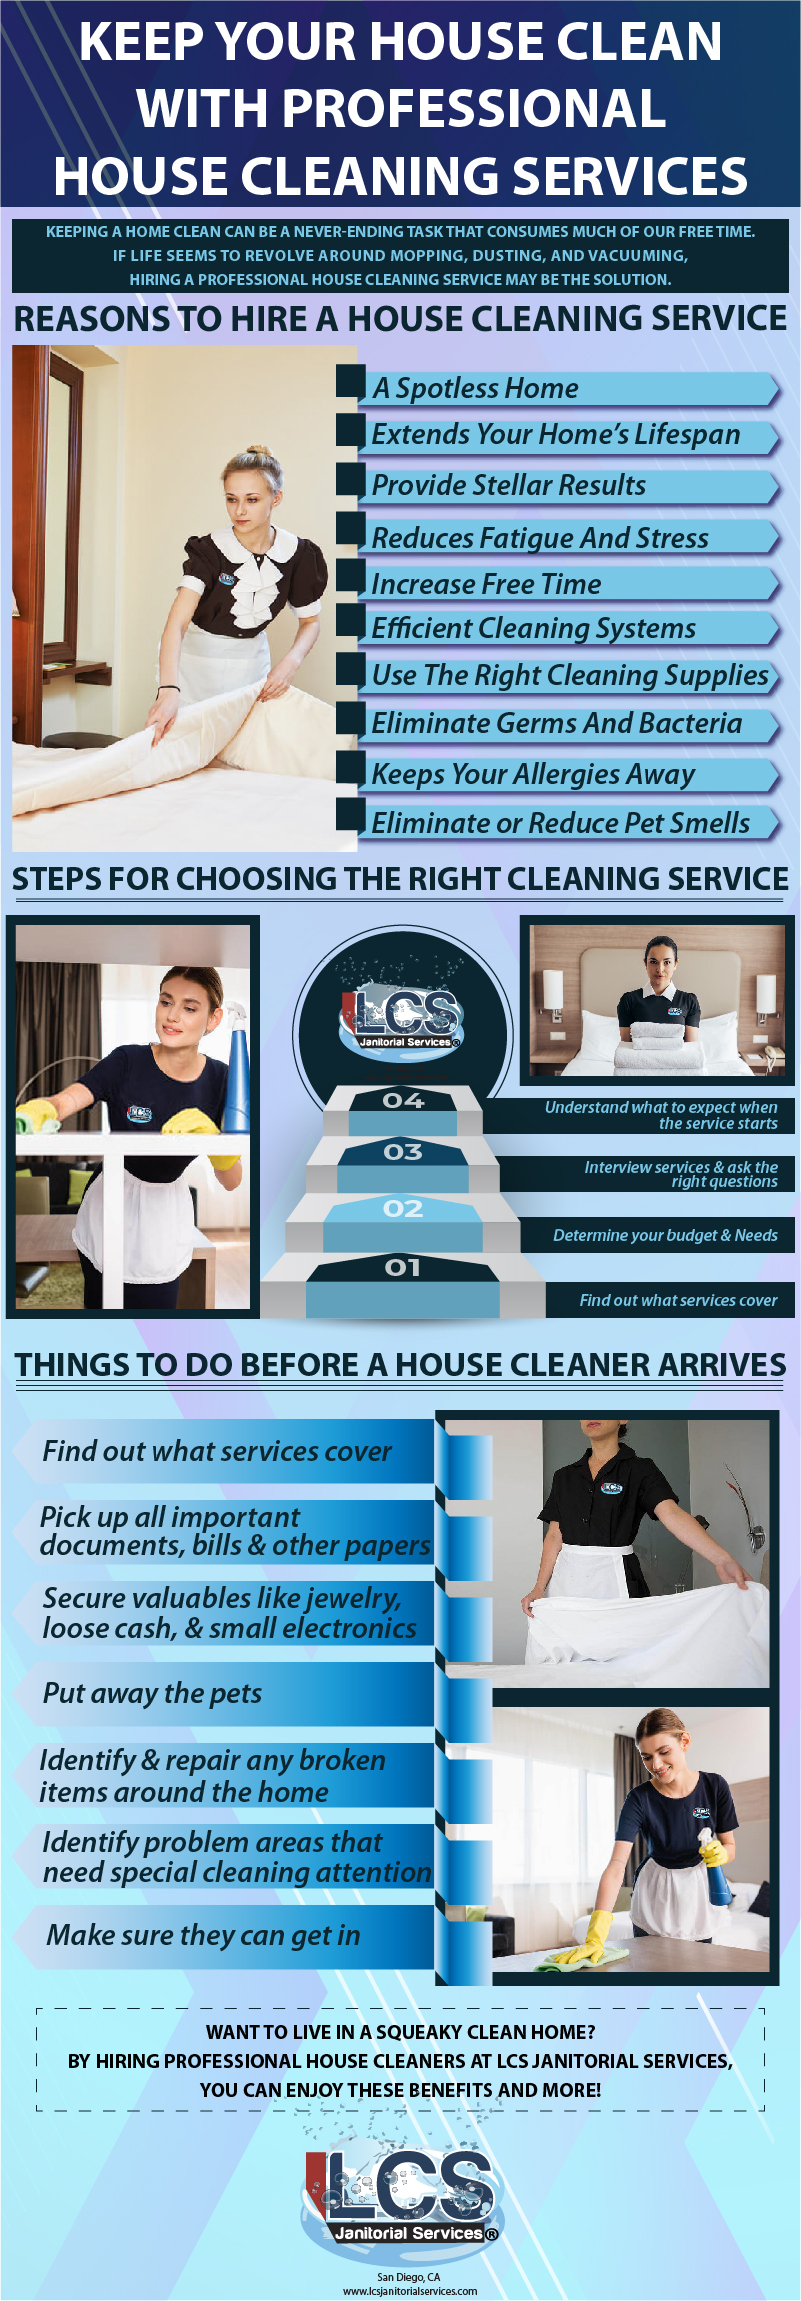 Professional House Cleaning Services San Diego